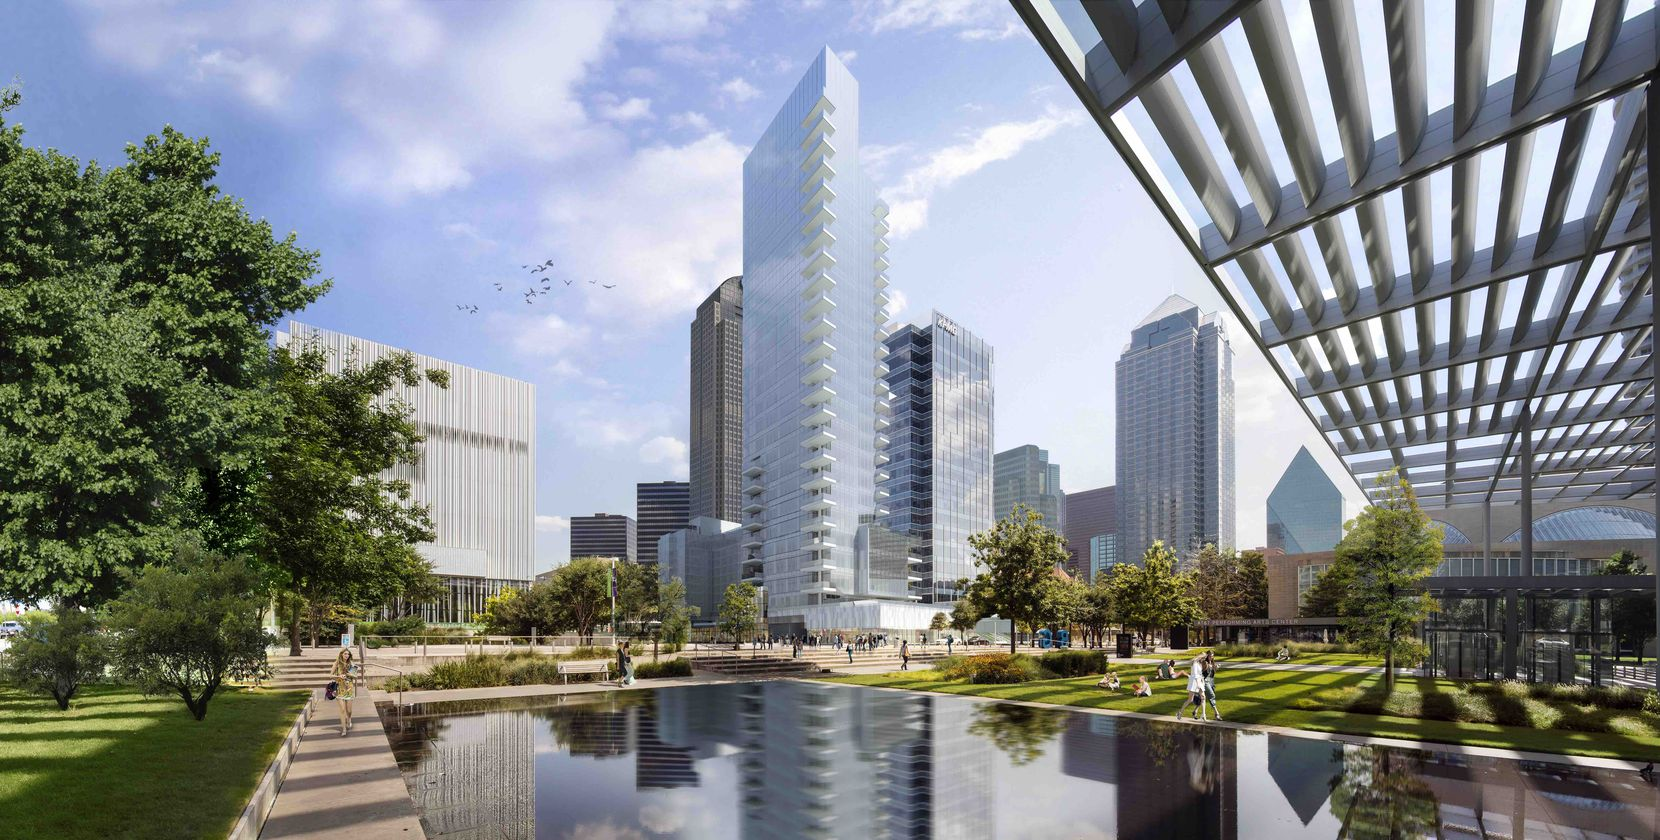 The Hall Arts project will have a 28-story luxury condo tower and adjoining boutique hotel.